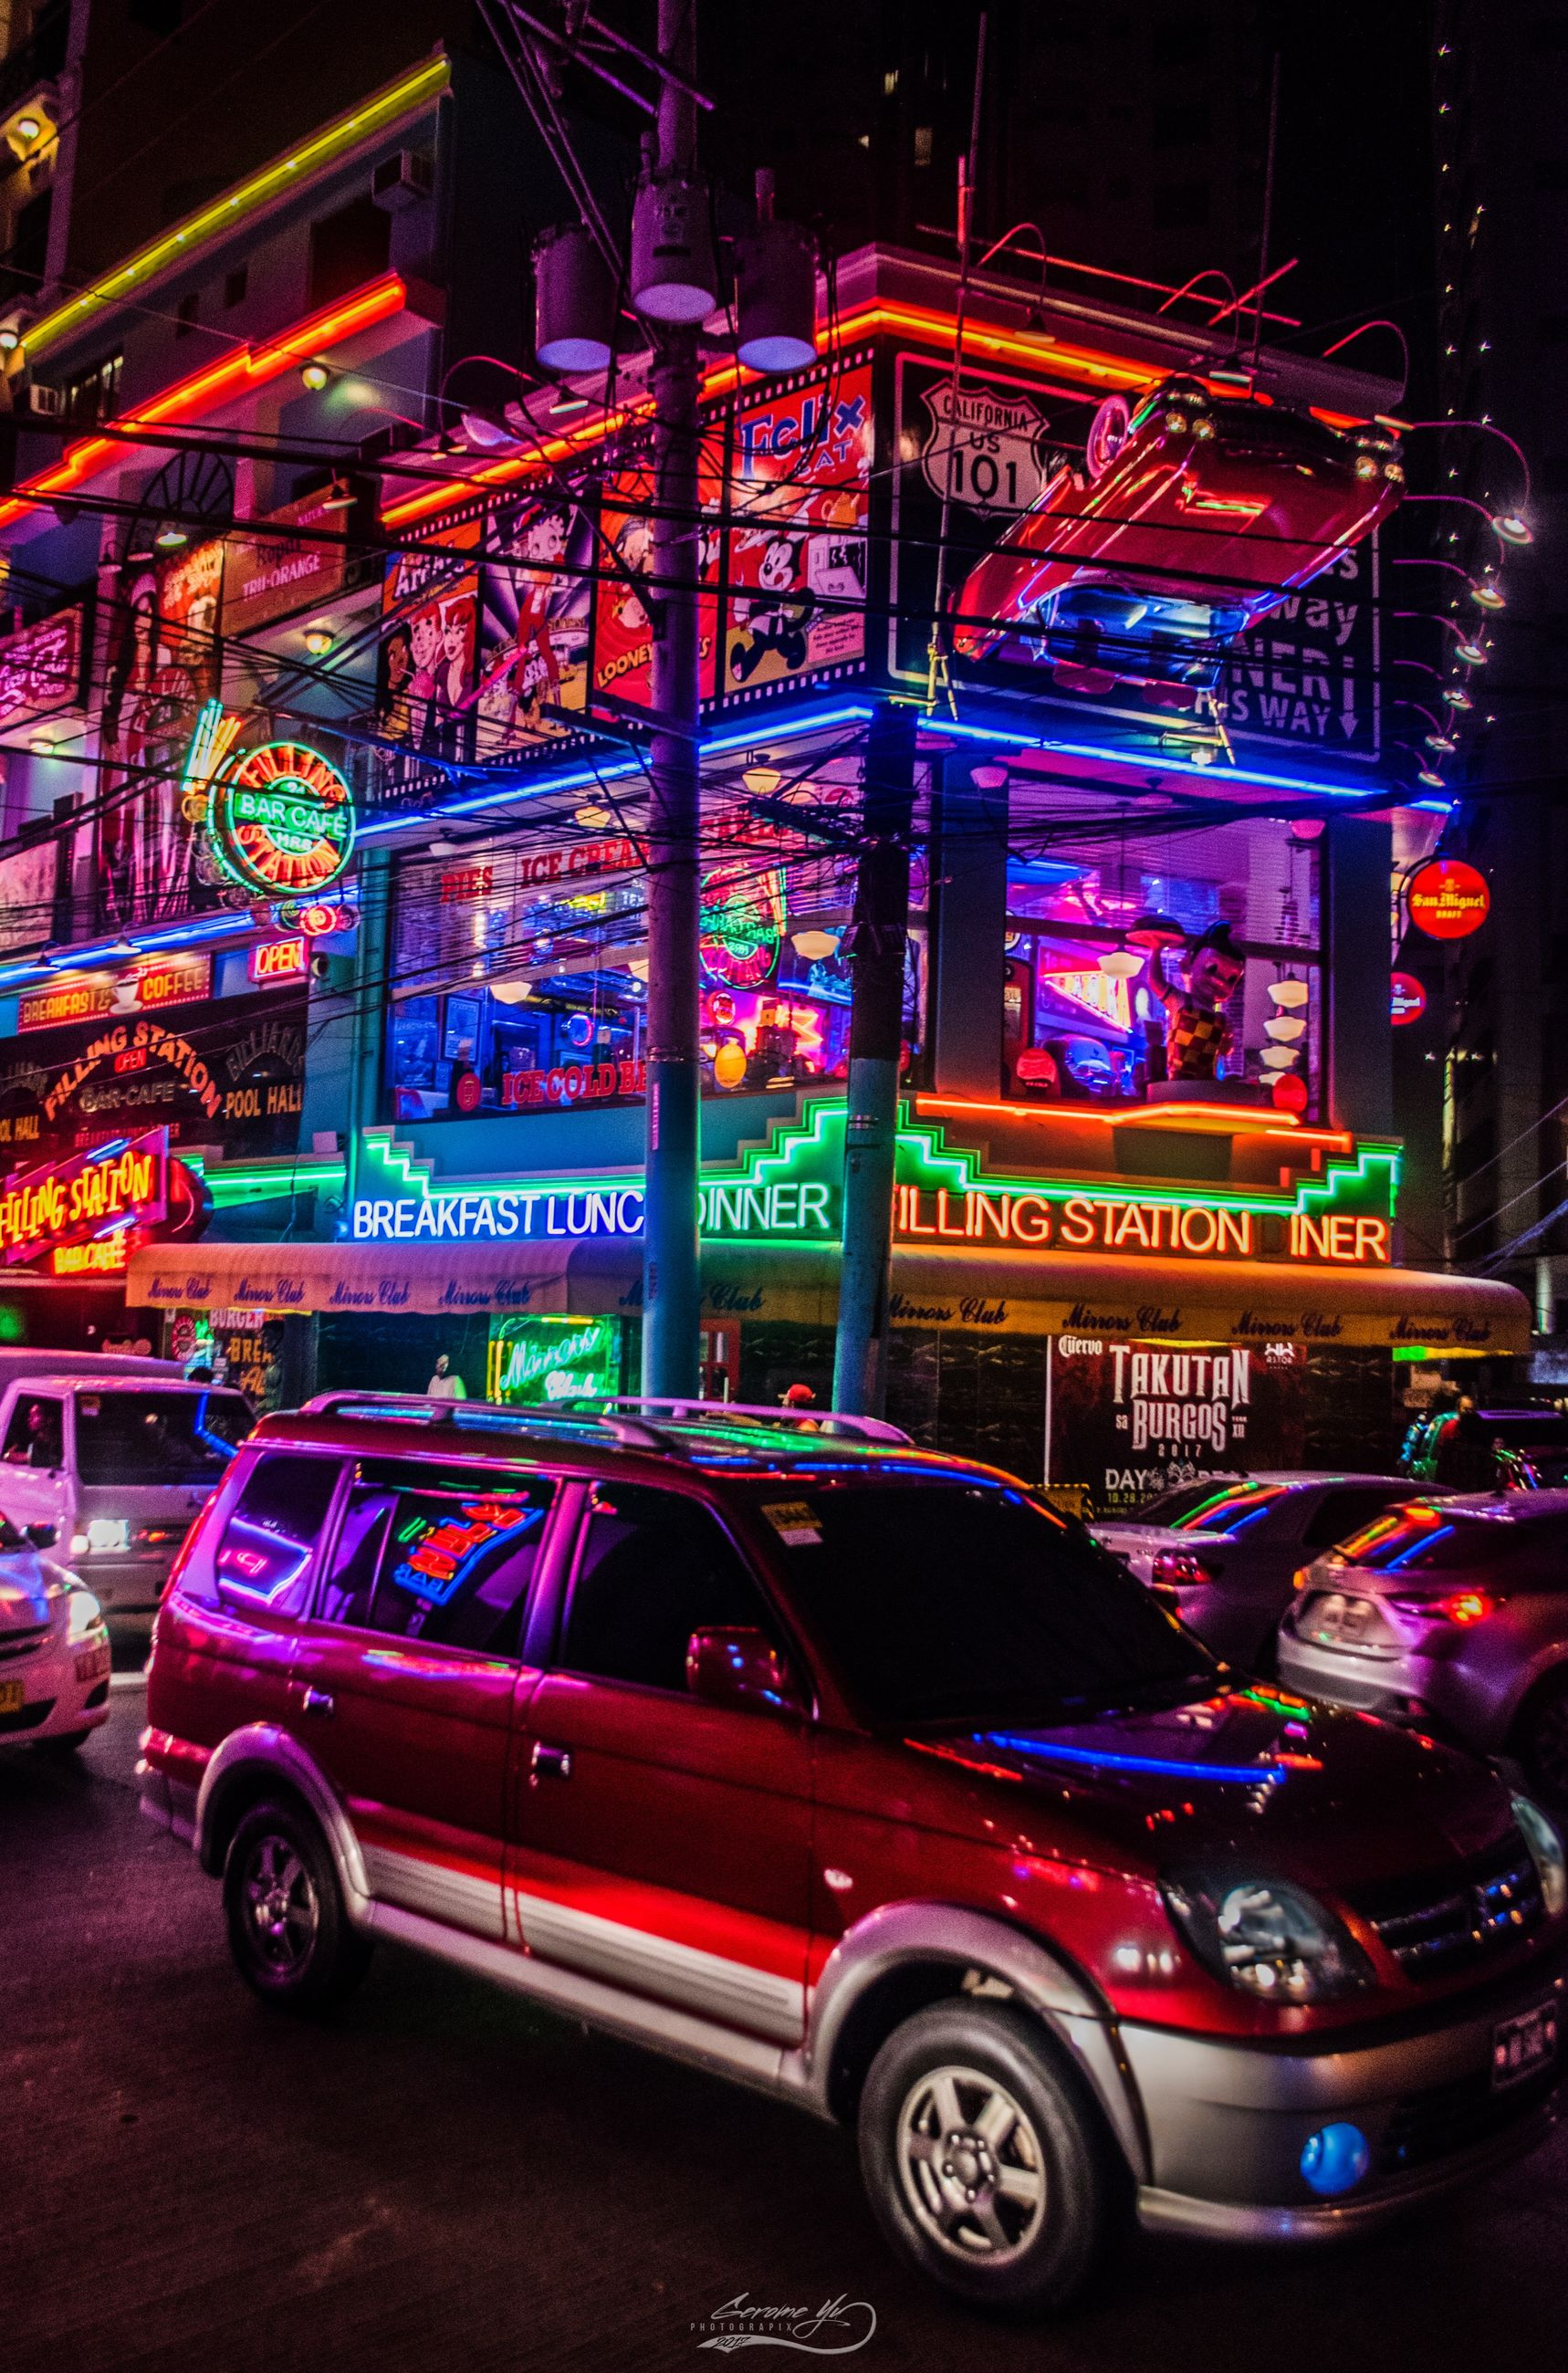 illuminated, car, night, mode of transportation, city, motor vehicle, transportation, neon, text, multi colored, architecture, communication, street, building exterior, no people, land vehicle, western script, built structure, motion, outdoors, nightlife